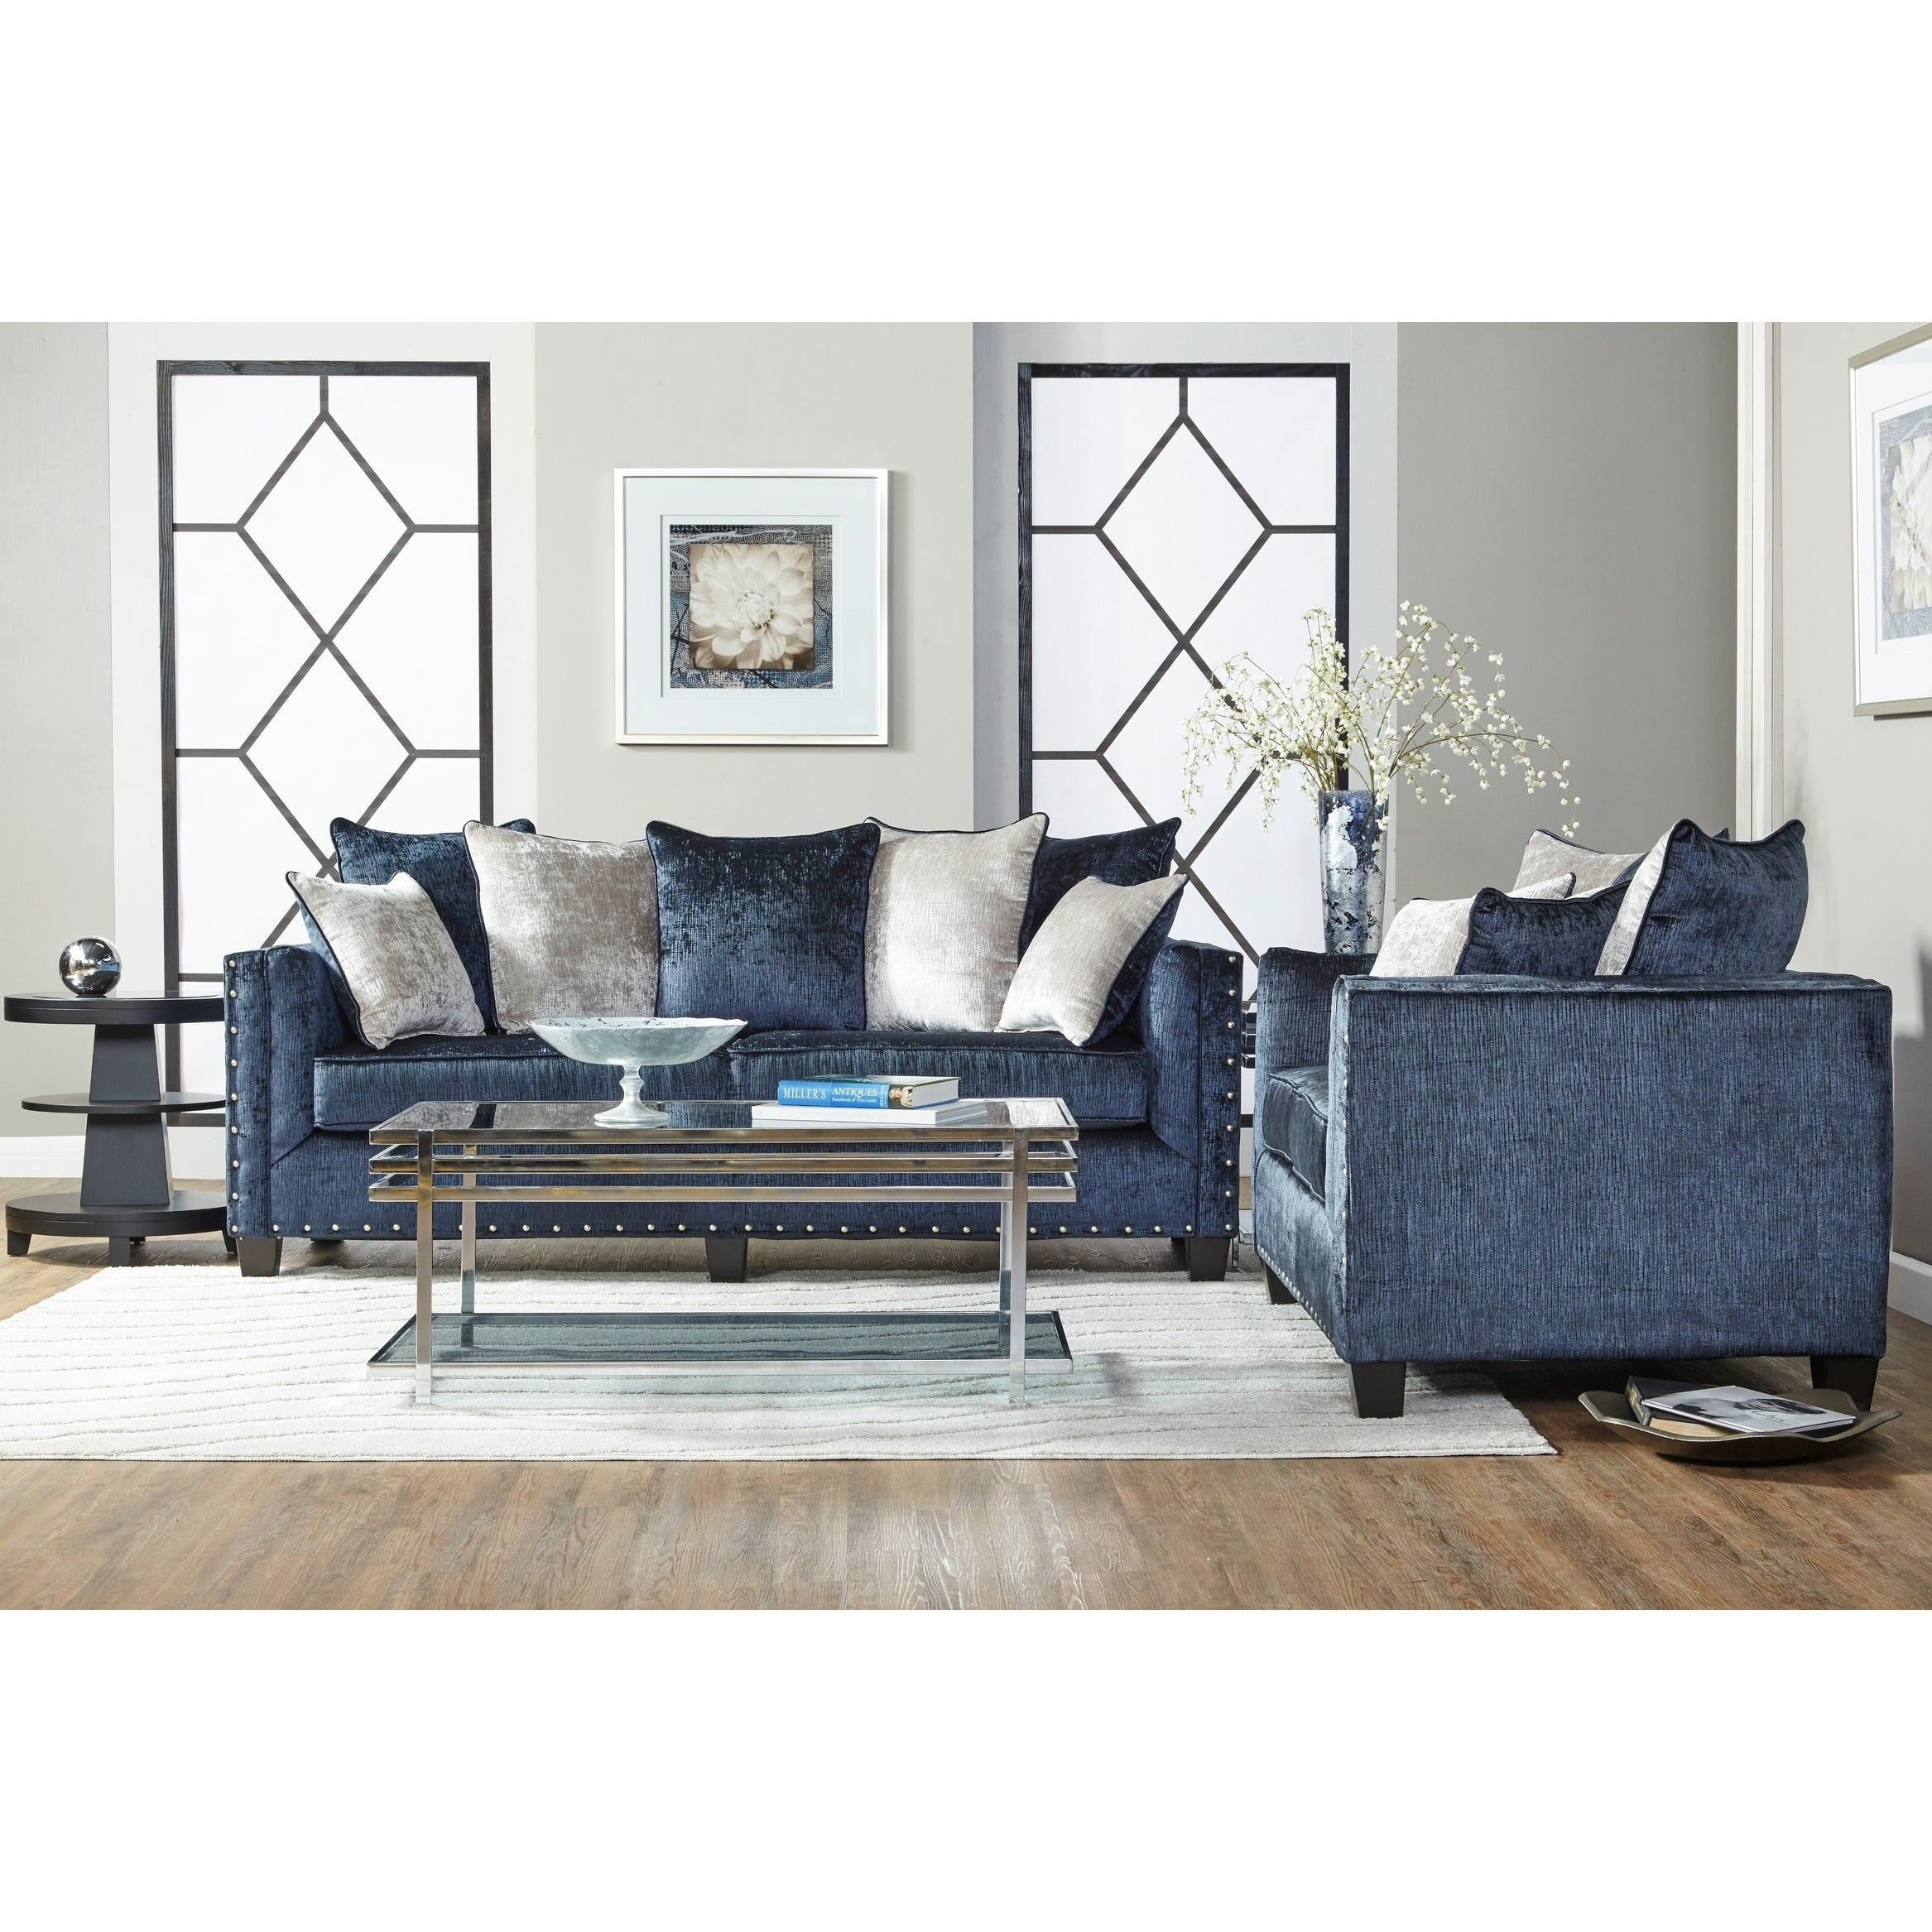 Incredible Ikat Grand Blue Velvet Sofa Set With Nail Head Accent Ibusinesslaw Wood Chair Design Ideas Ibusinesslaworg